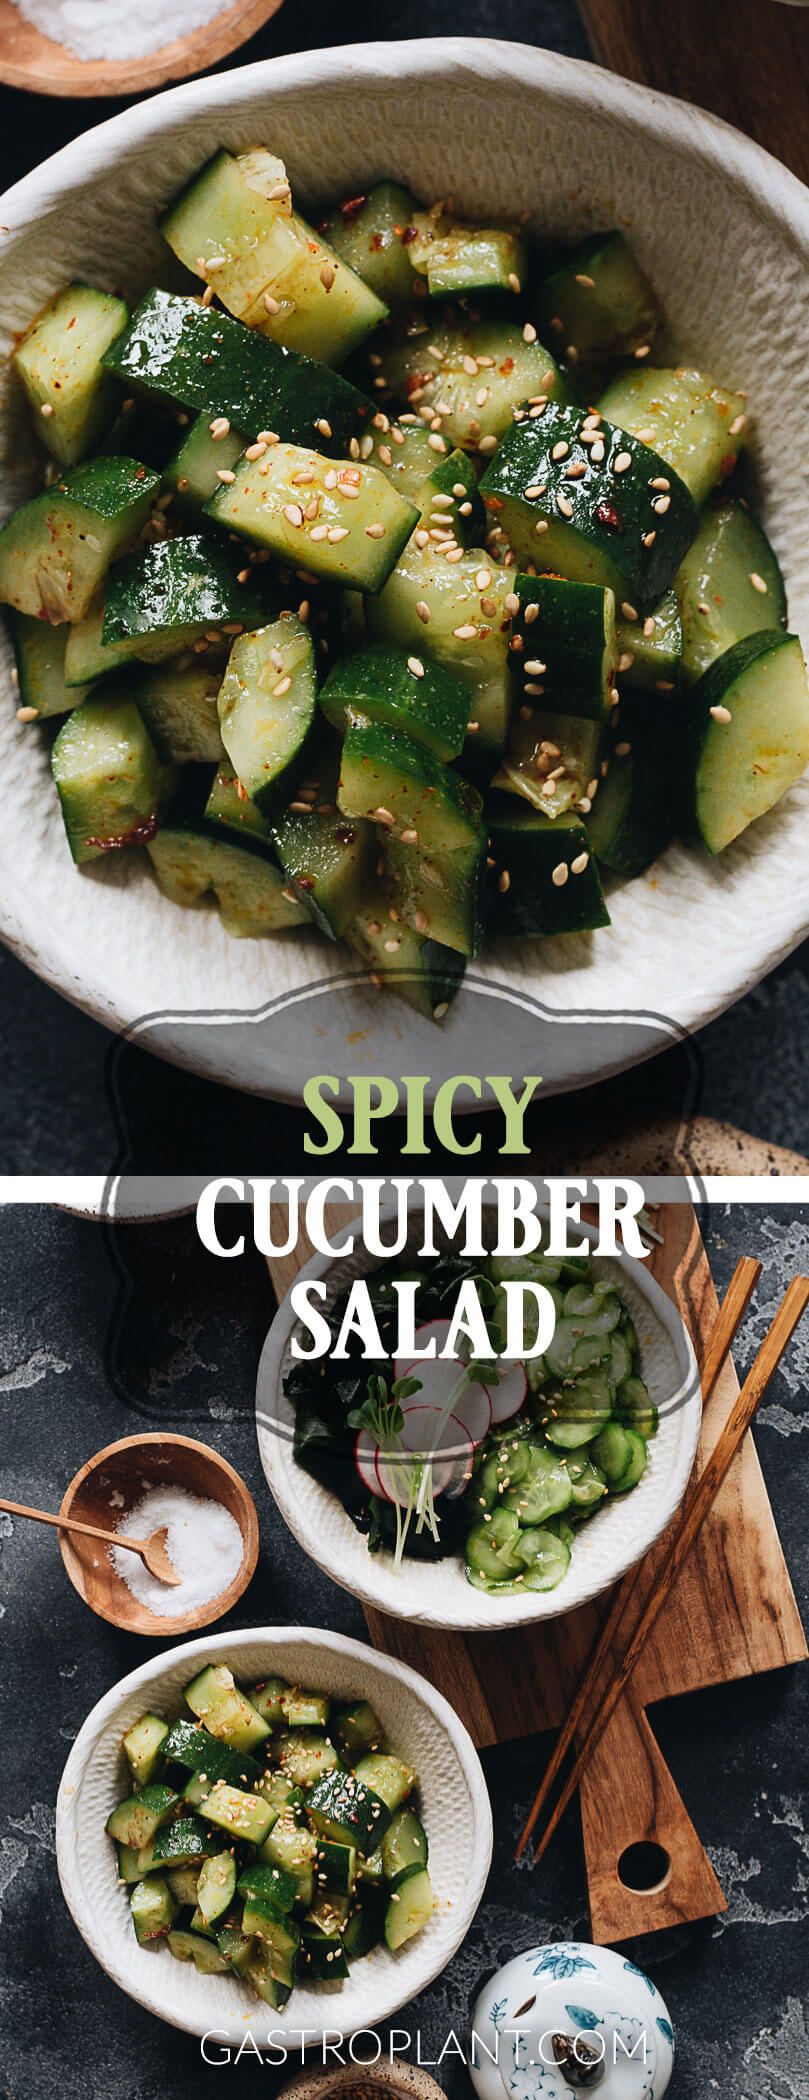 Spicy Cucumber Salad Two Ways Chinese Japanese